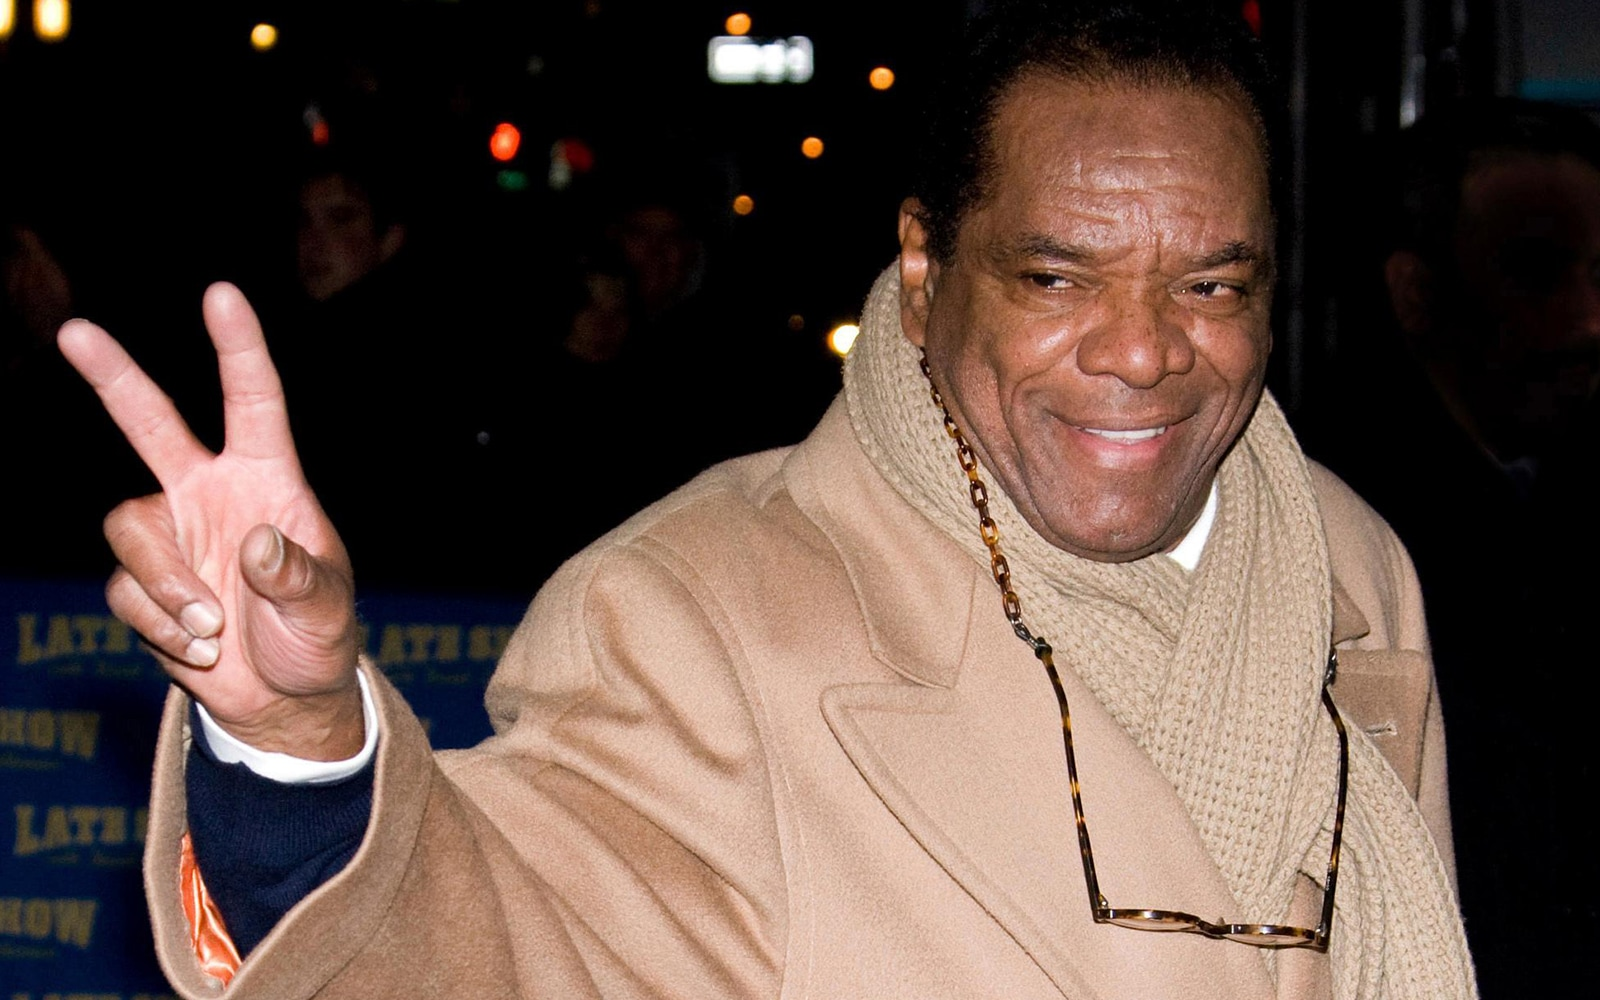 REMEMBERING JOHN WITHERSPOON AND HIS LEGENDARY TV AND MOVIE PERFORMANCES